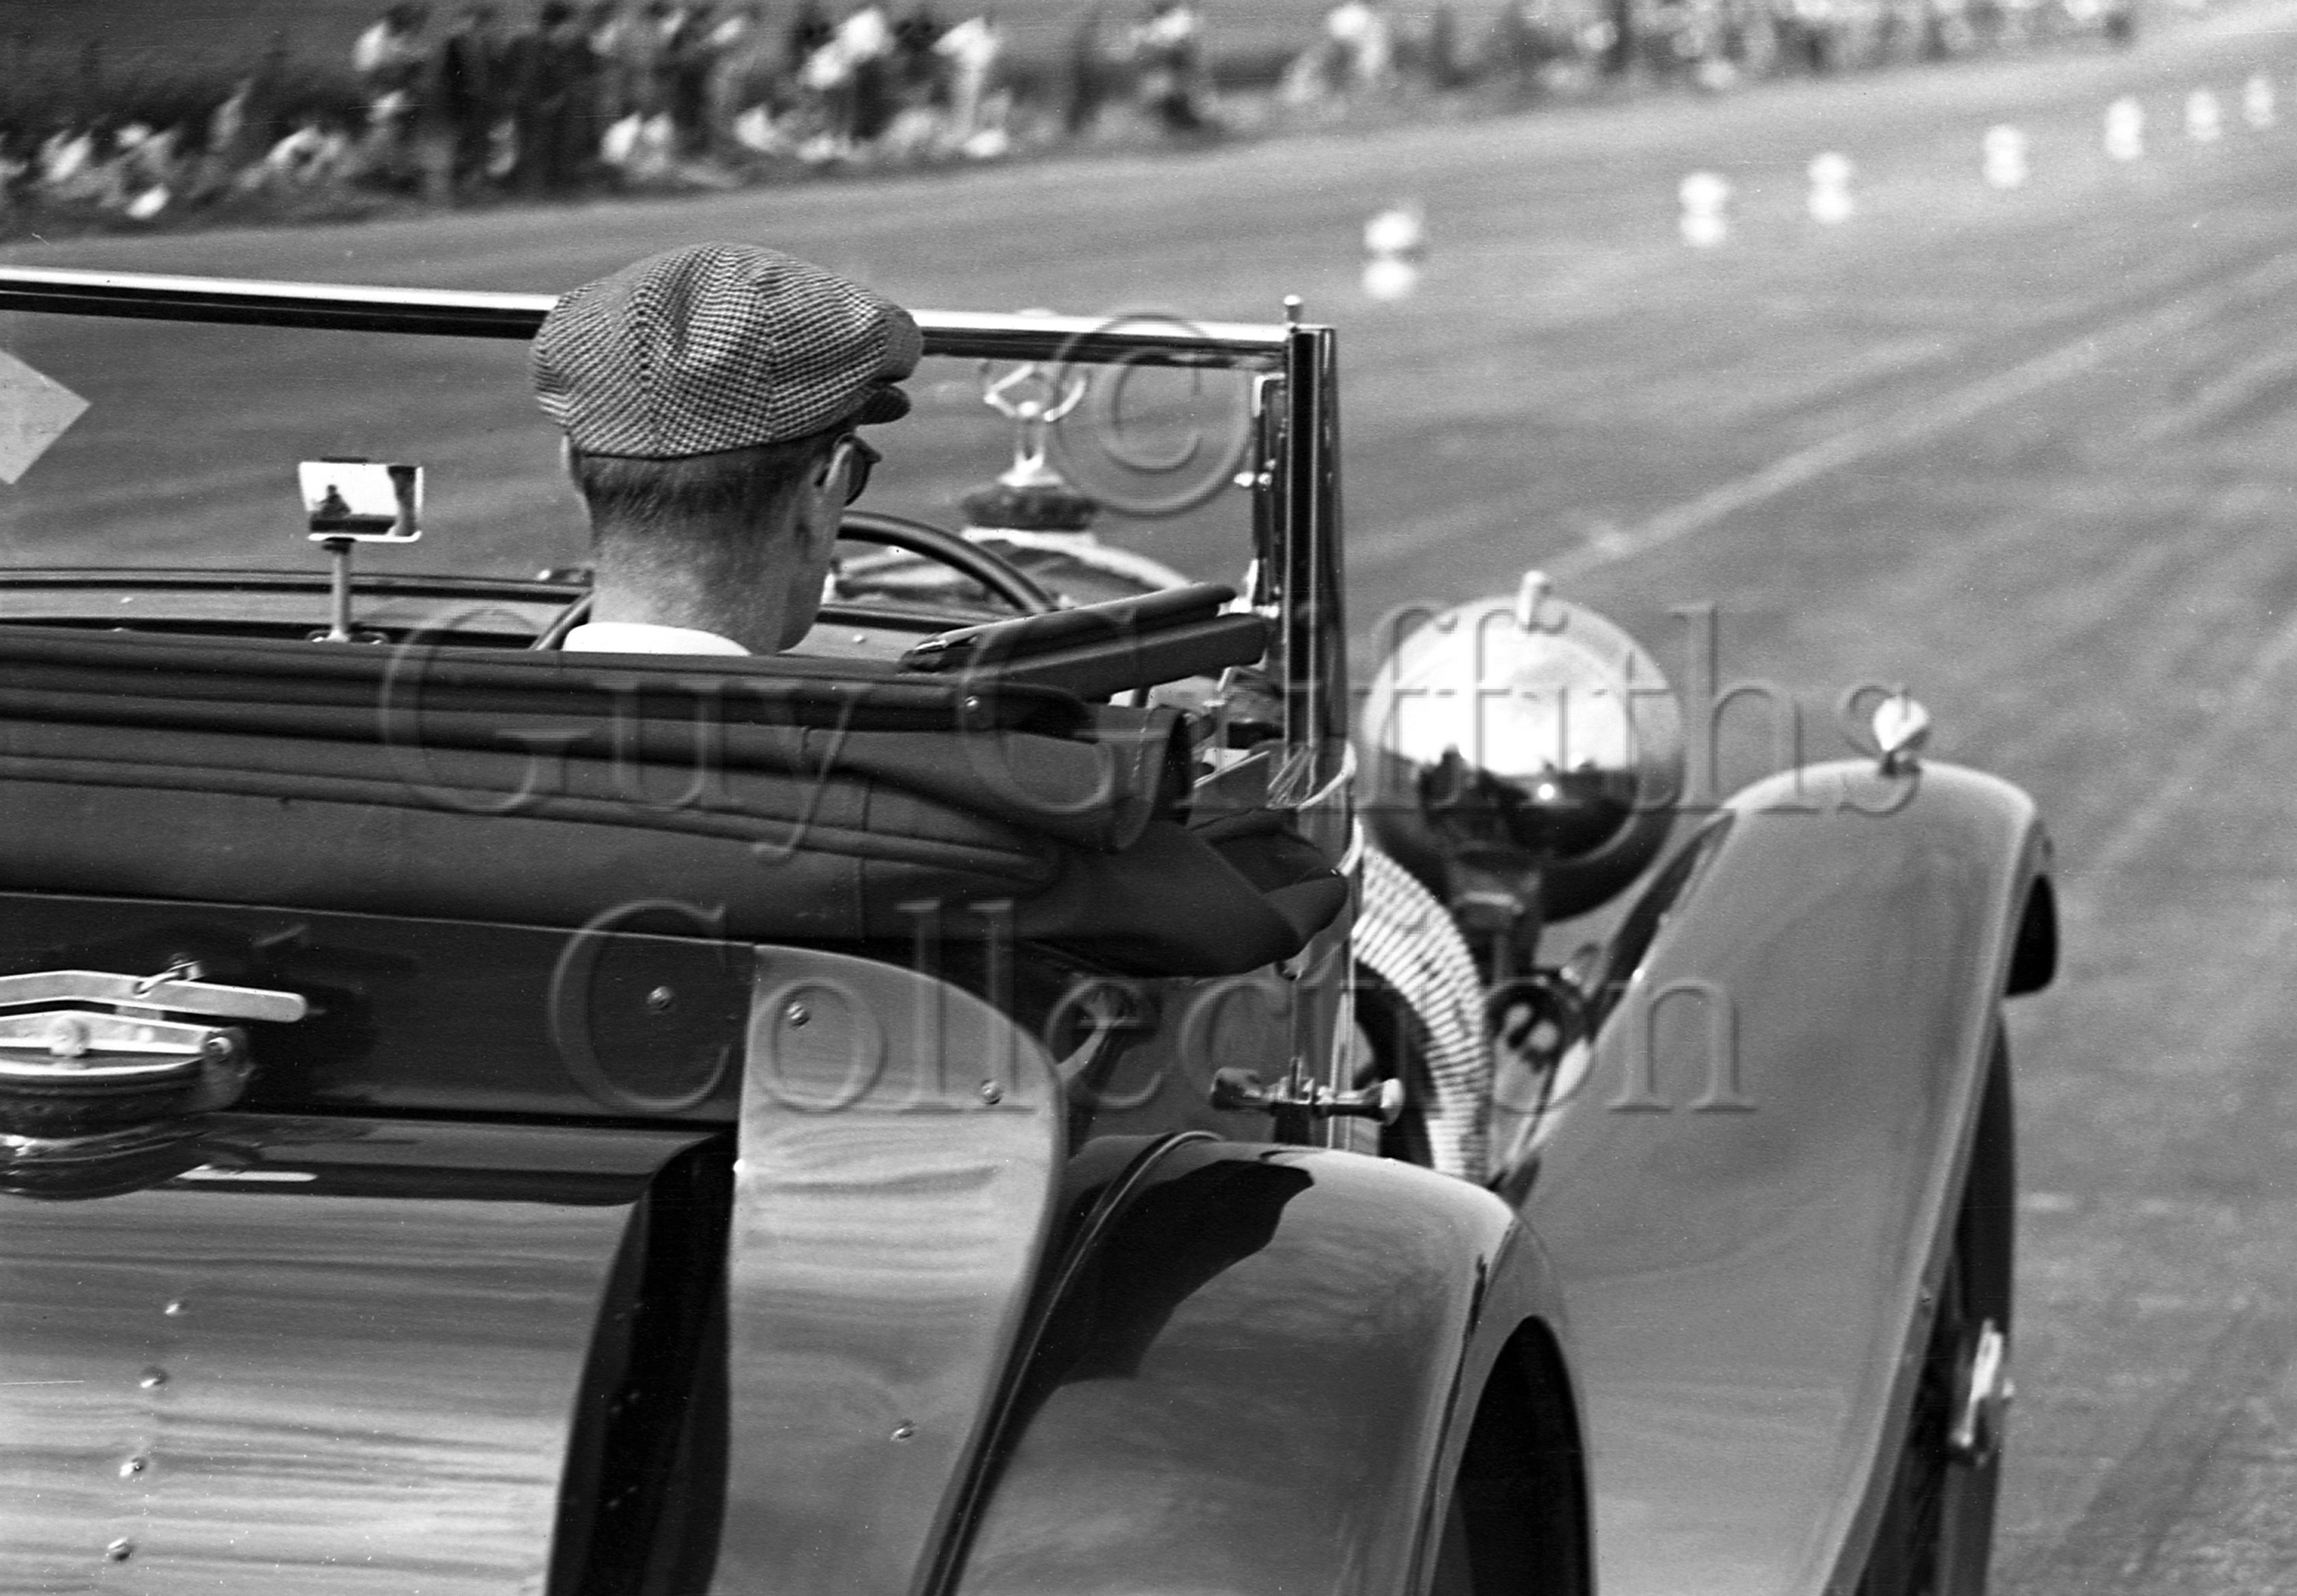 19-161–G-M-Crozier–Mercedes-Benz–Silverstone–23-07-1949.jpg - The Guy Griffiths Collection